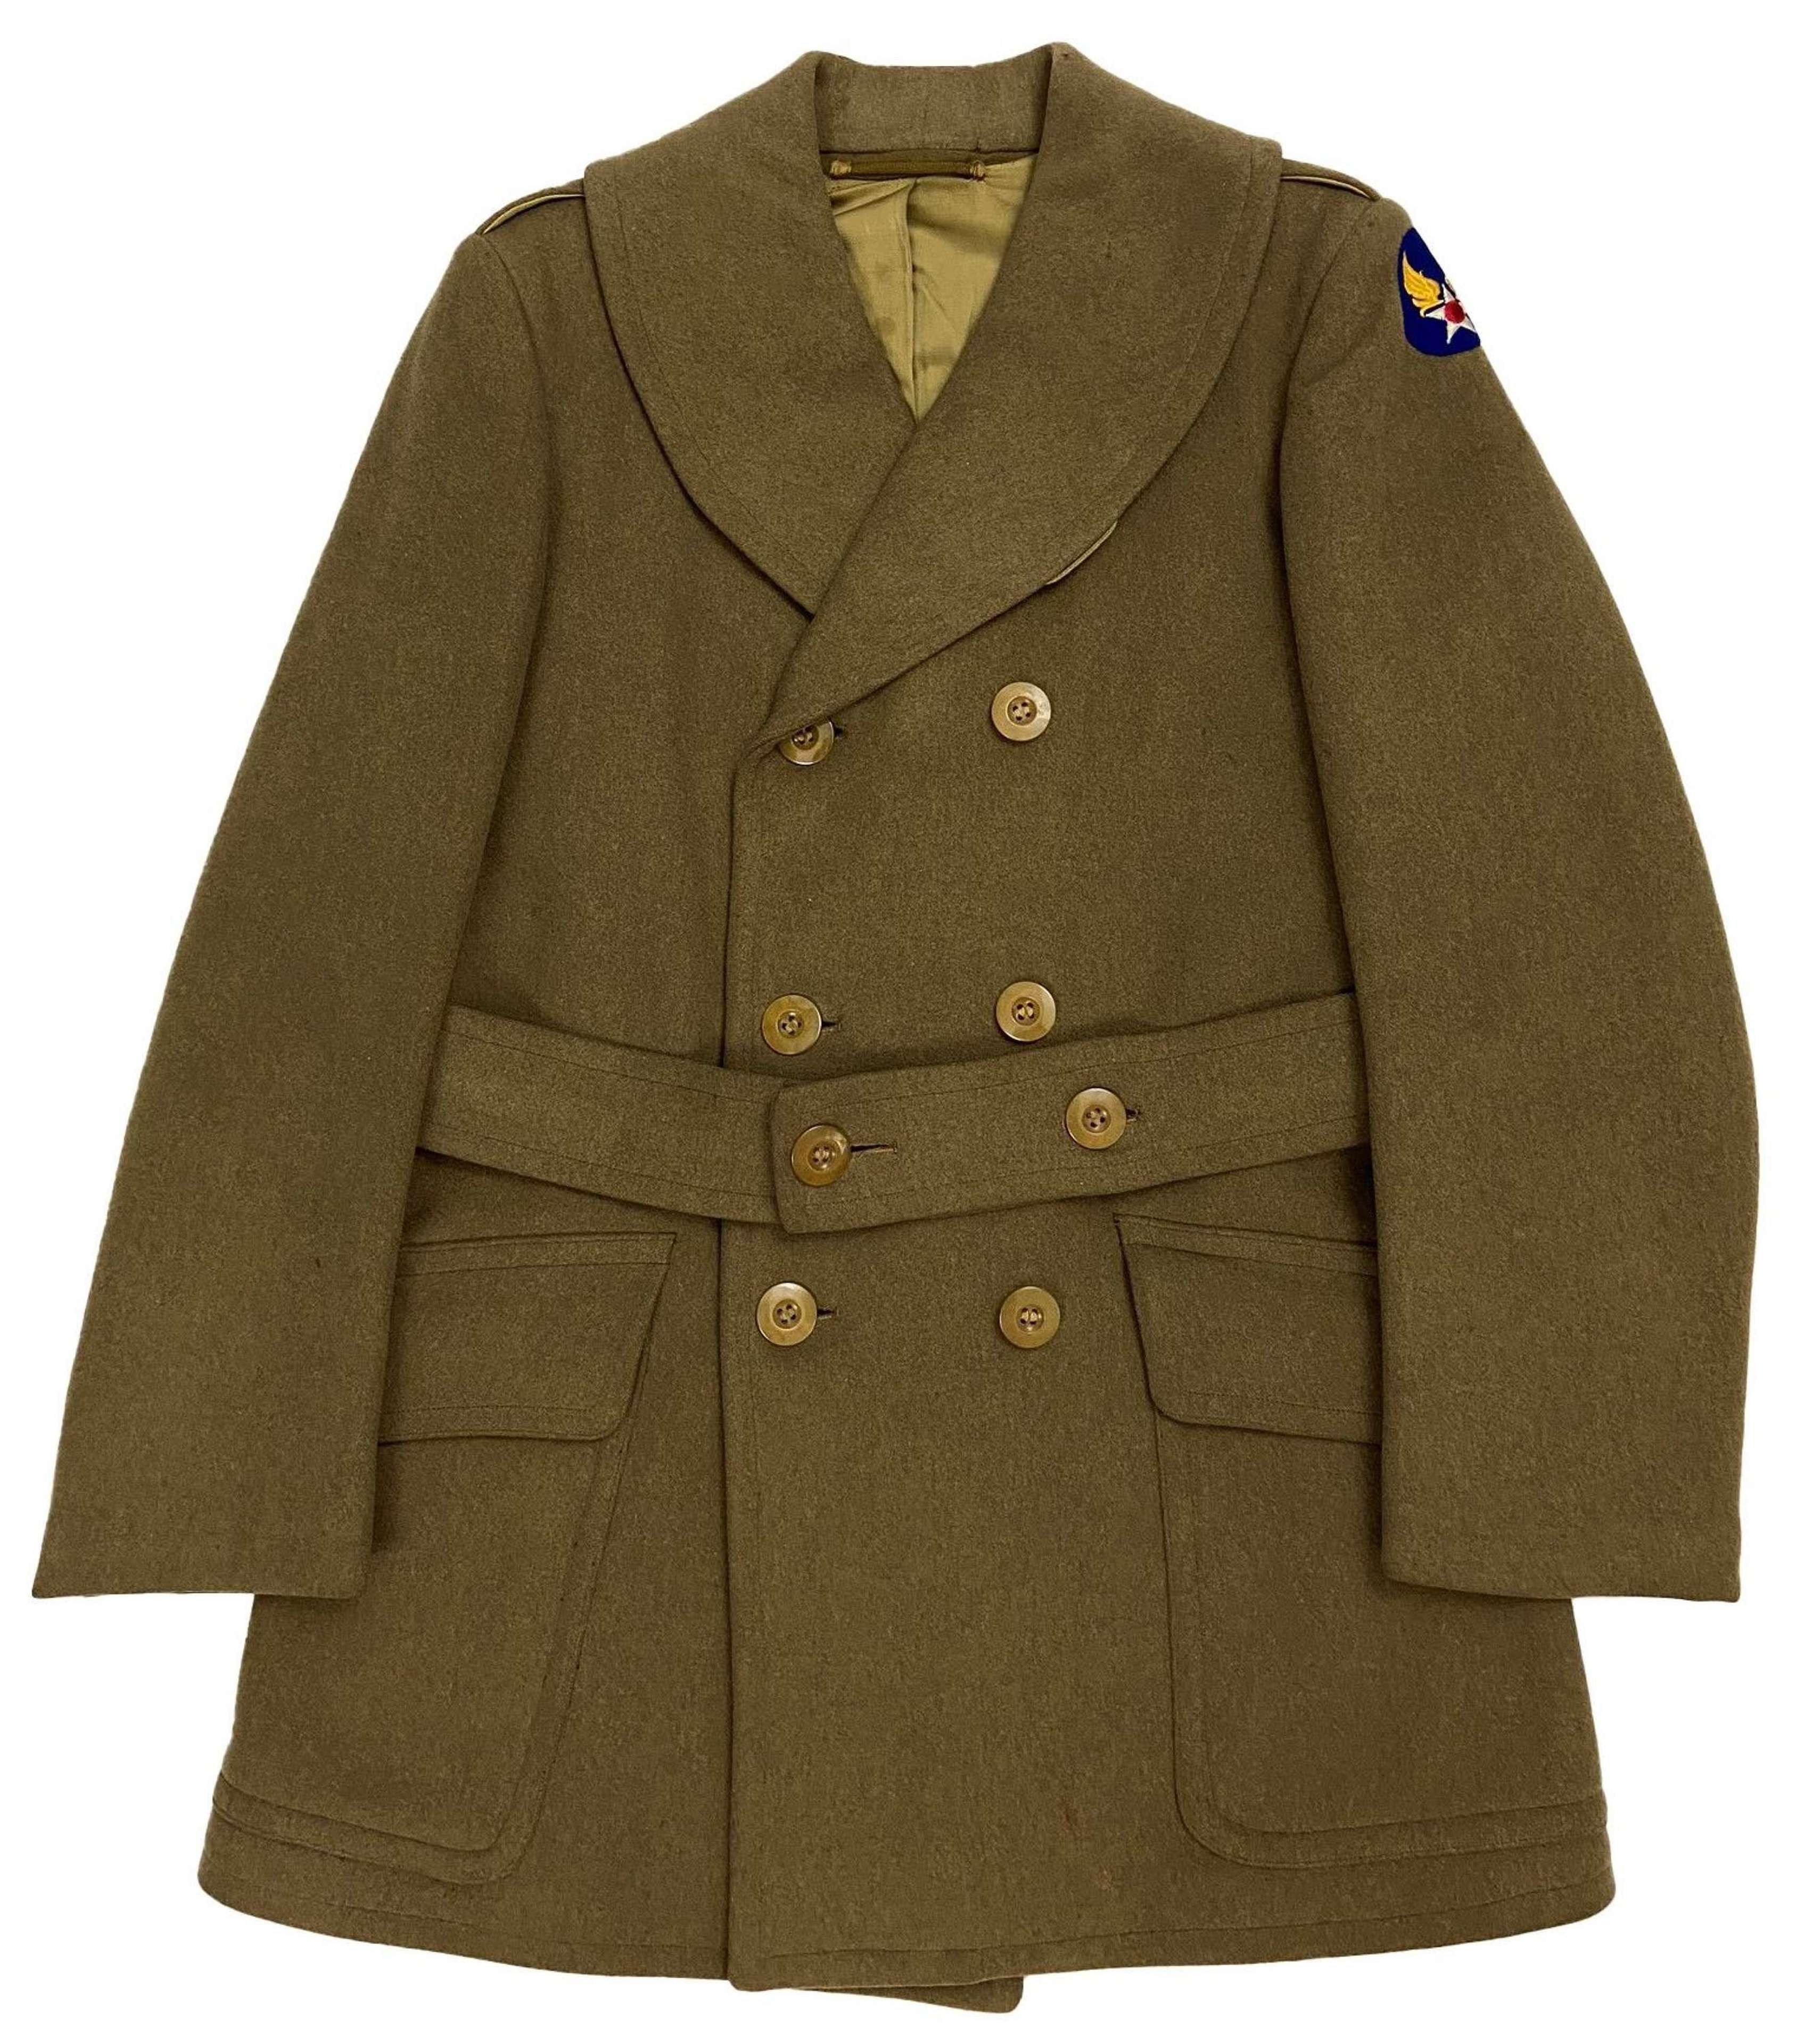 Original Early WW2 USAAF Officers Short Overcoat - Size 39S